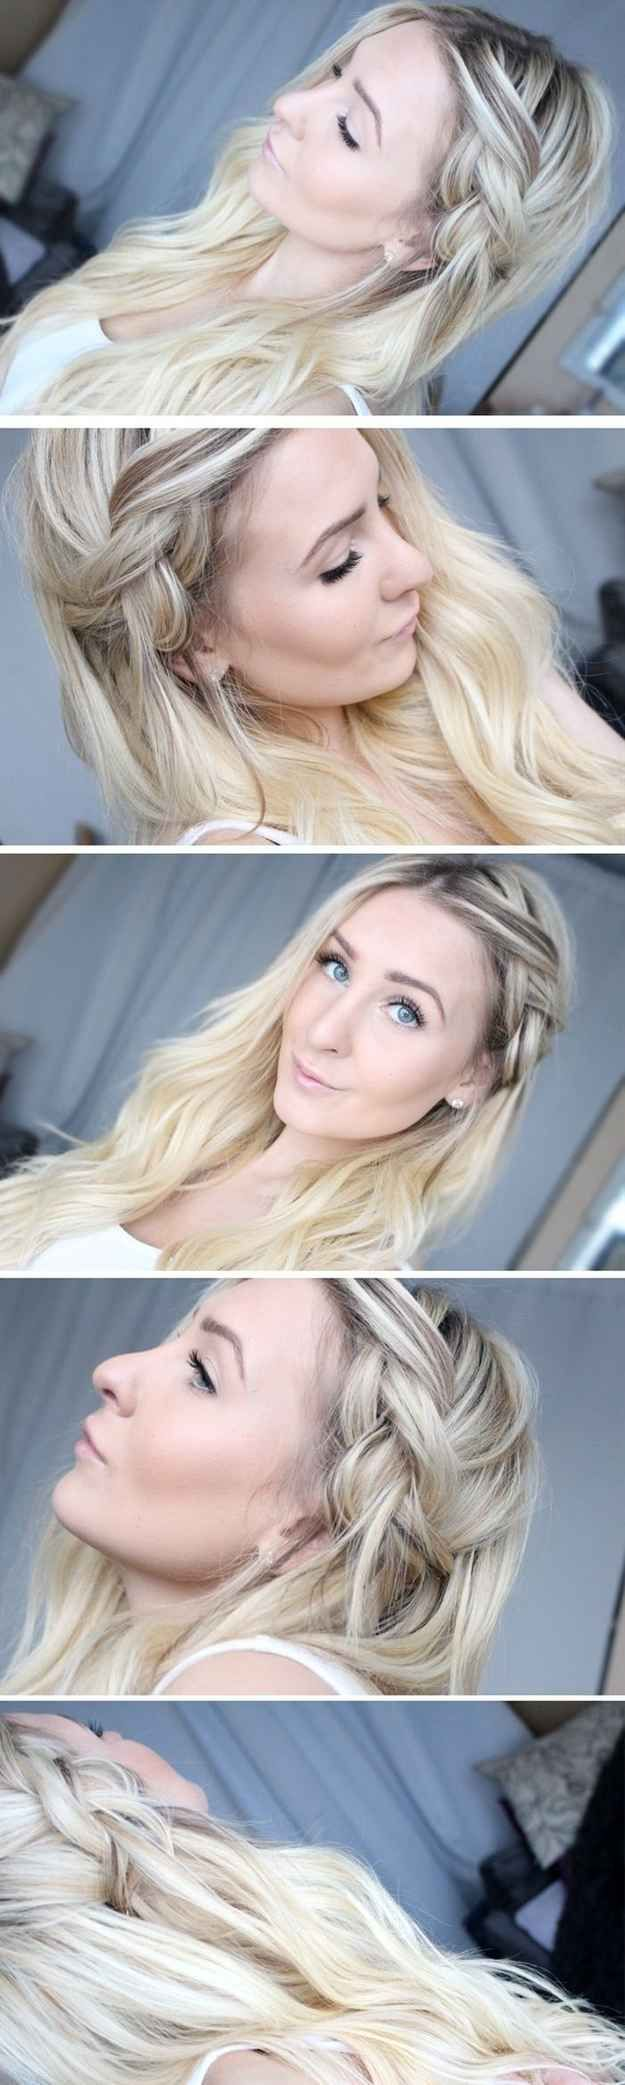 This half-done braid will stay even better in unwashed hair. | 26 Lazy Girl Hairstyling Hacks